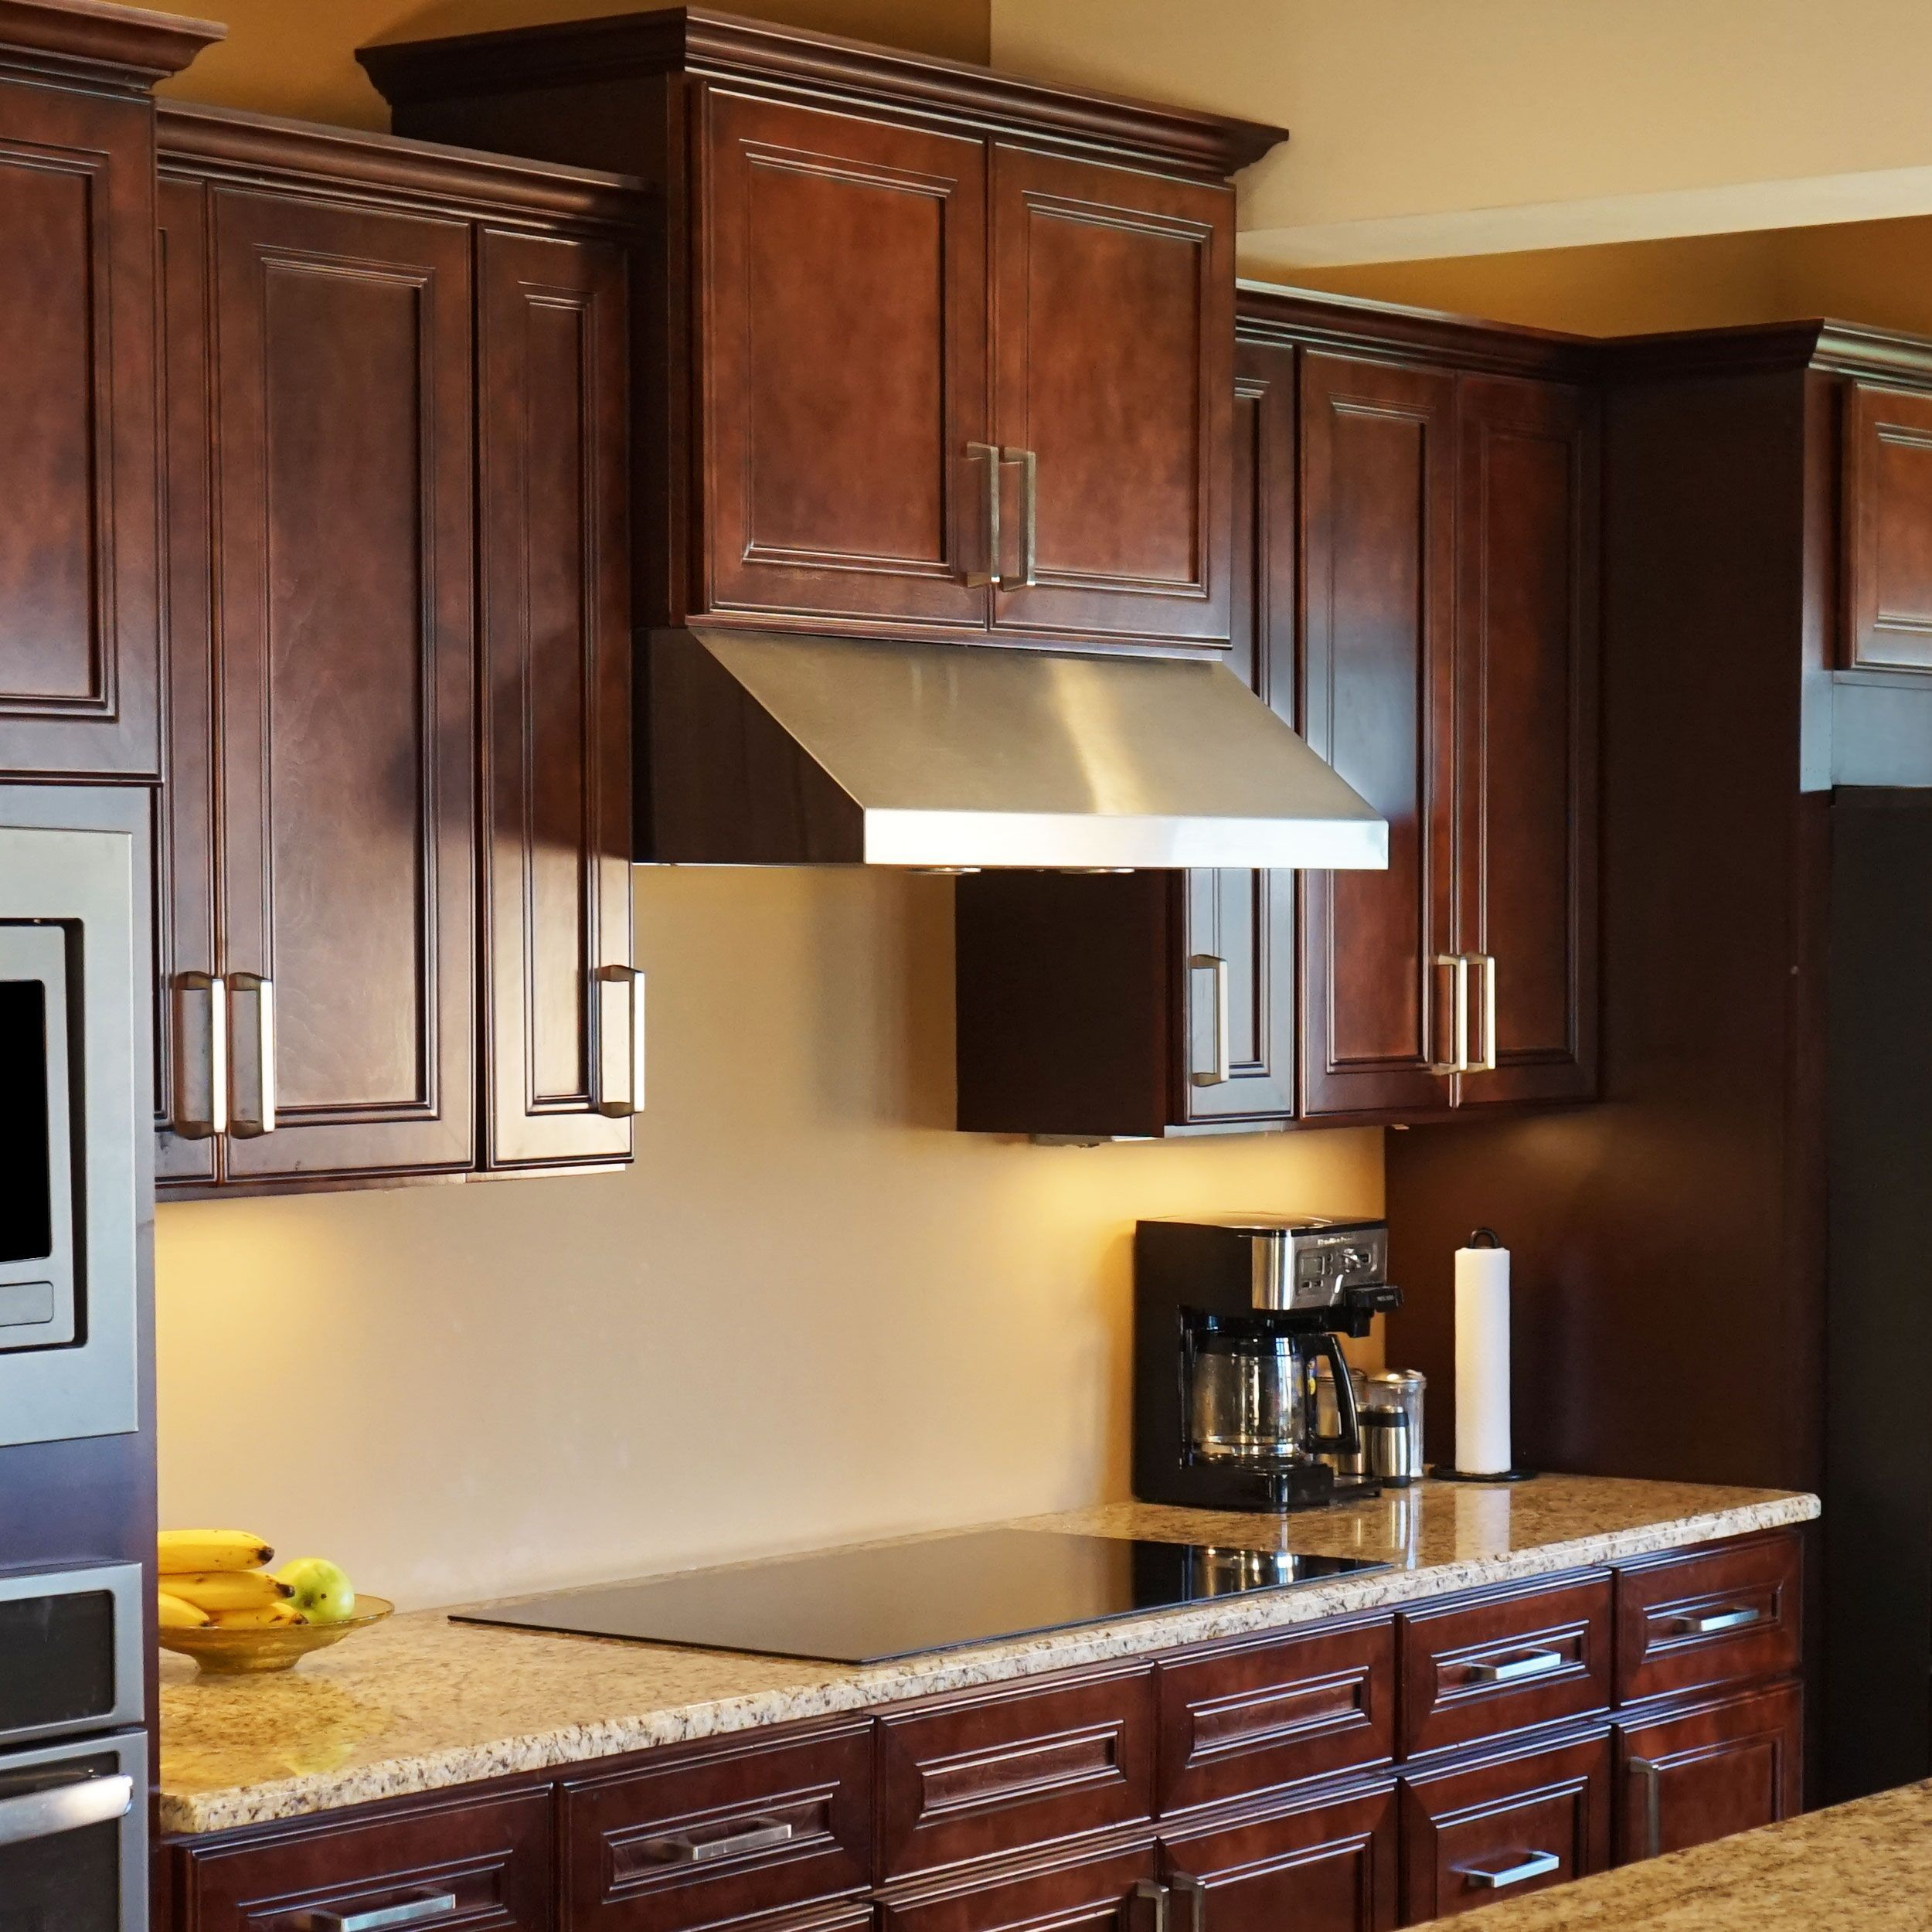 10x10 Kitchen Cabinets Bundle In Shaker Espresso With Soft Close Drawers Doors Everyday Cabinet Kitchen Cabinets U Shaped Kitchen Cabinets Mahogany Kitchen